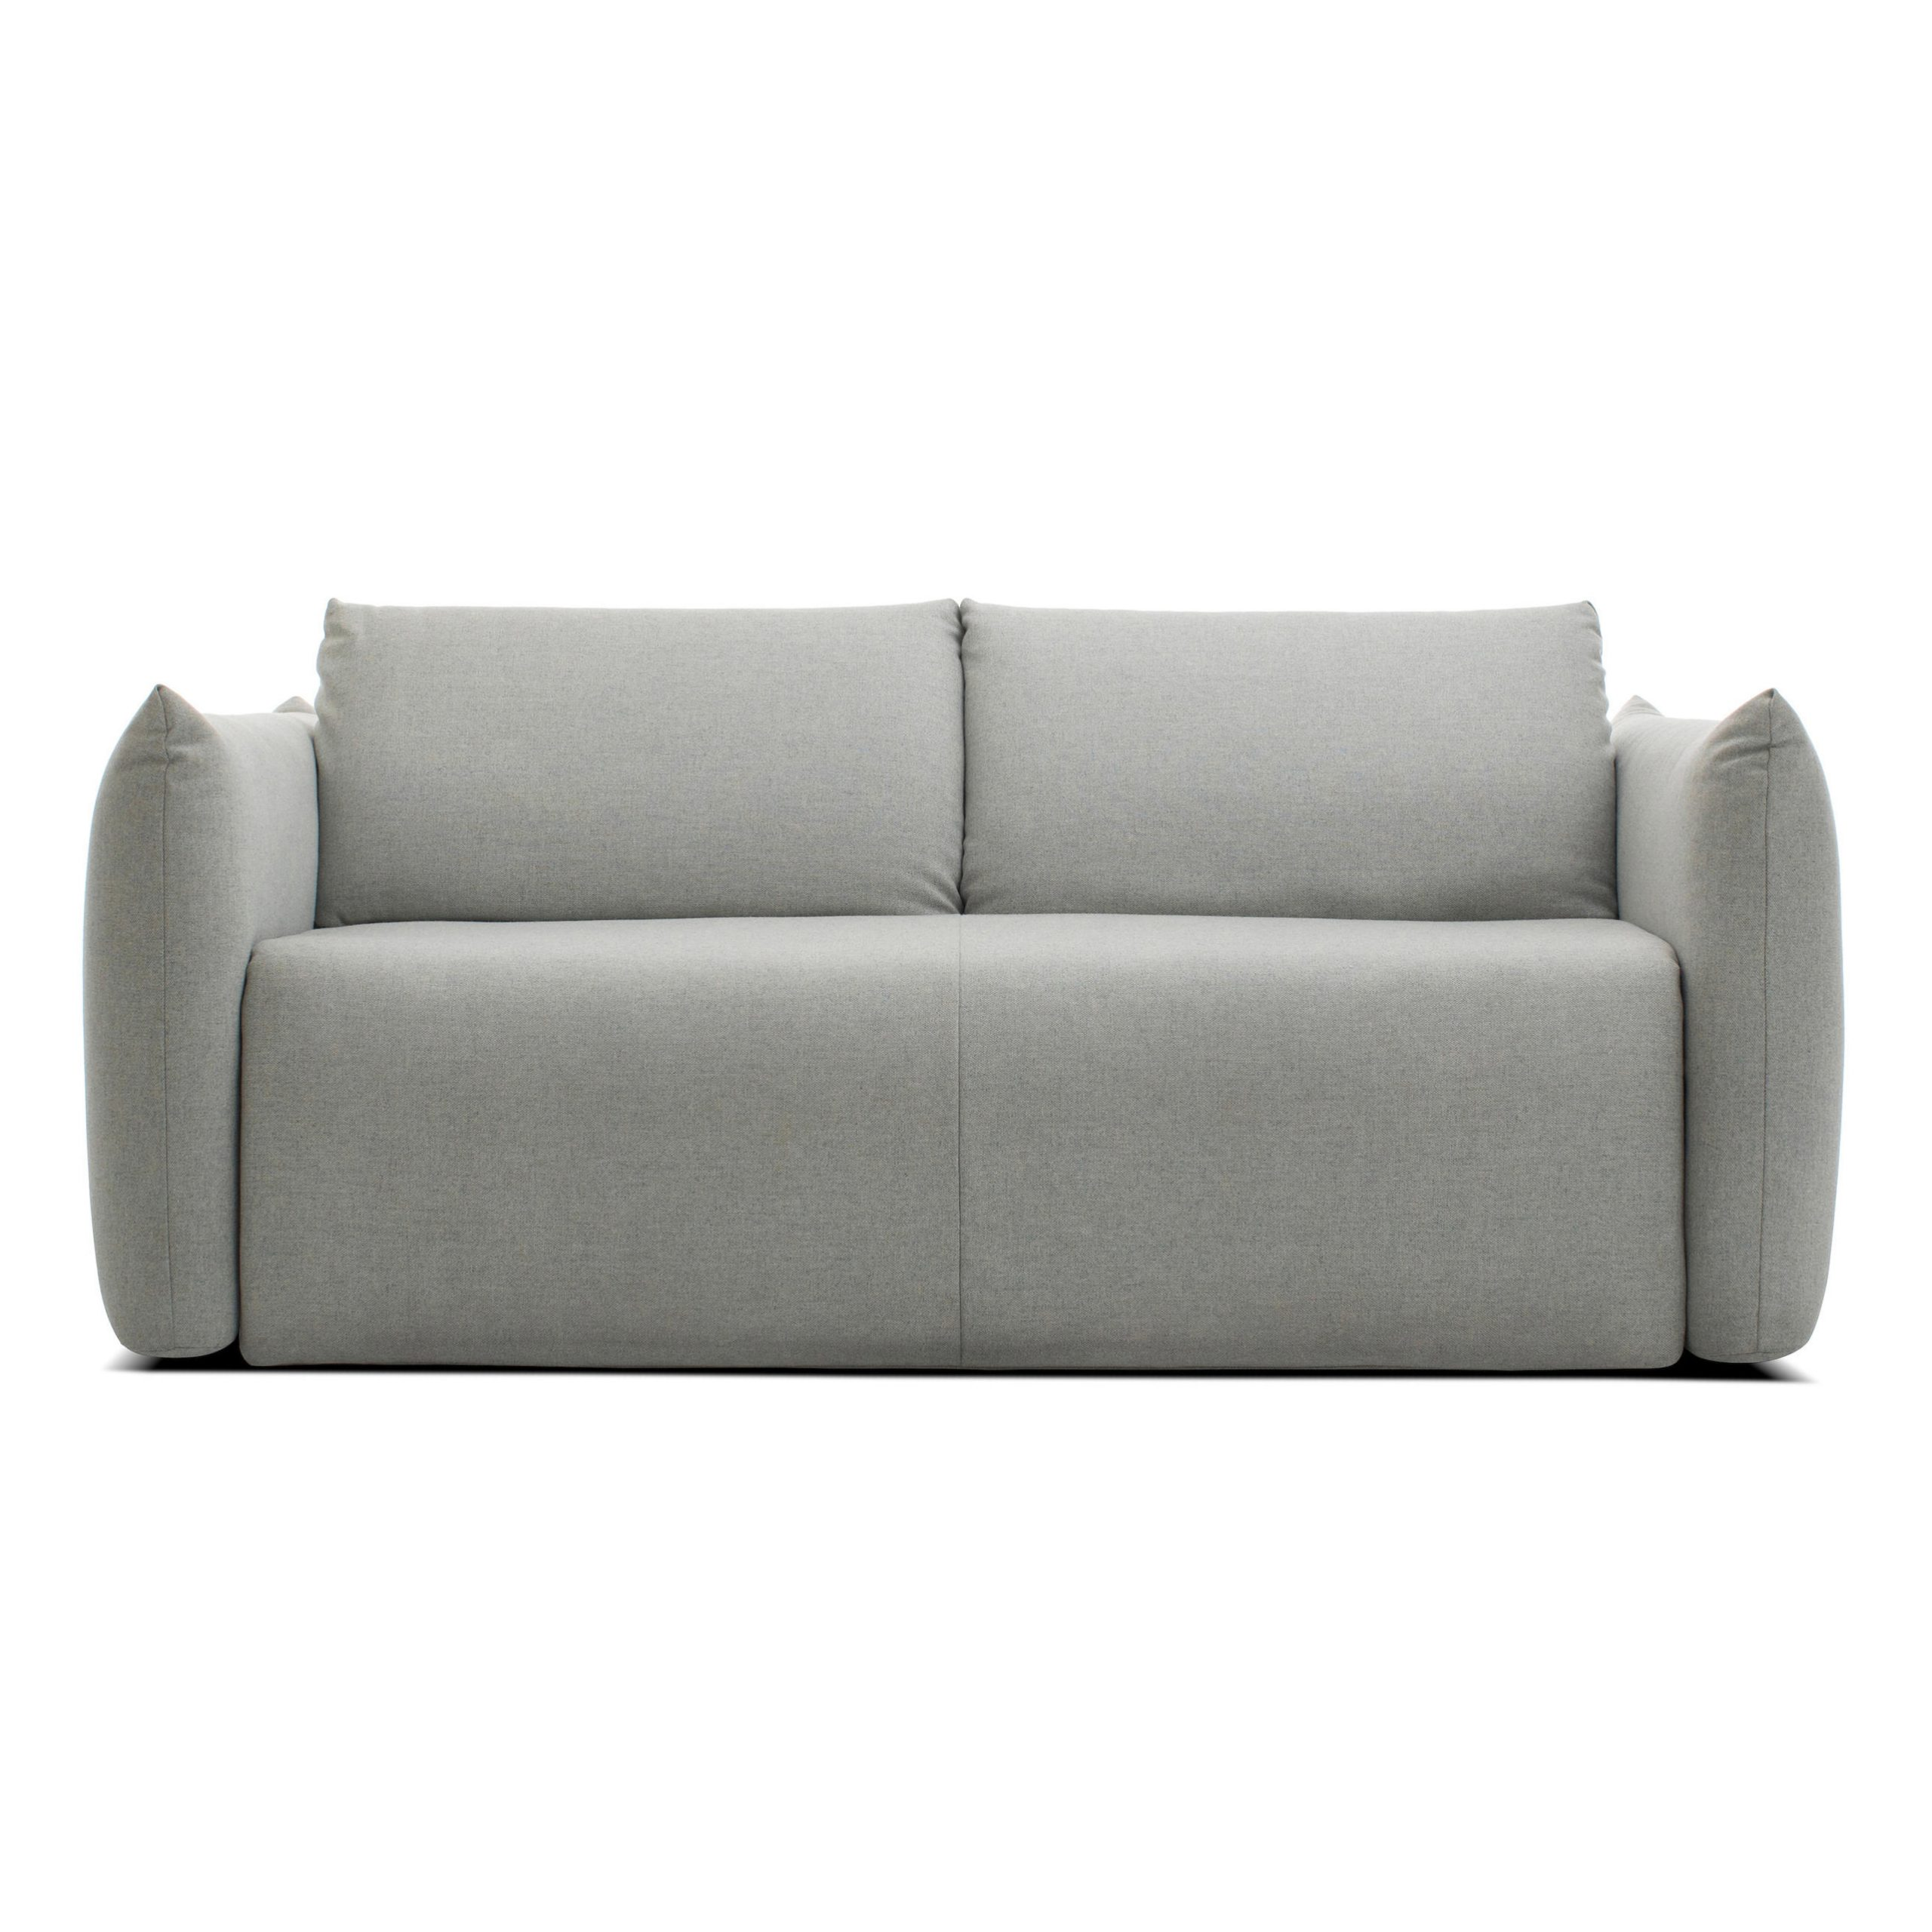 Recent Luna Leather Sectional Sofas Within Luna Sofa Bed – Sofas From Extraform (View 9 of 25)